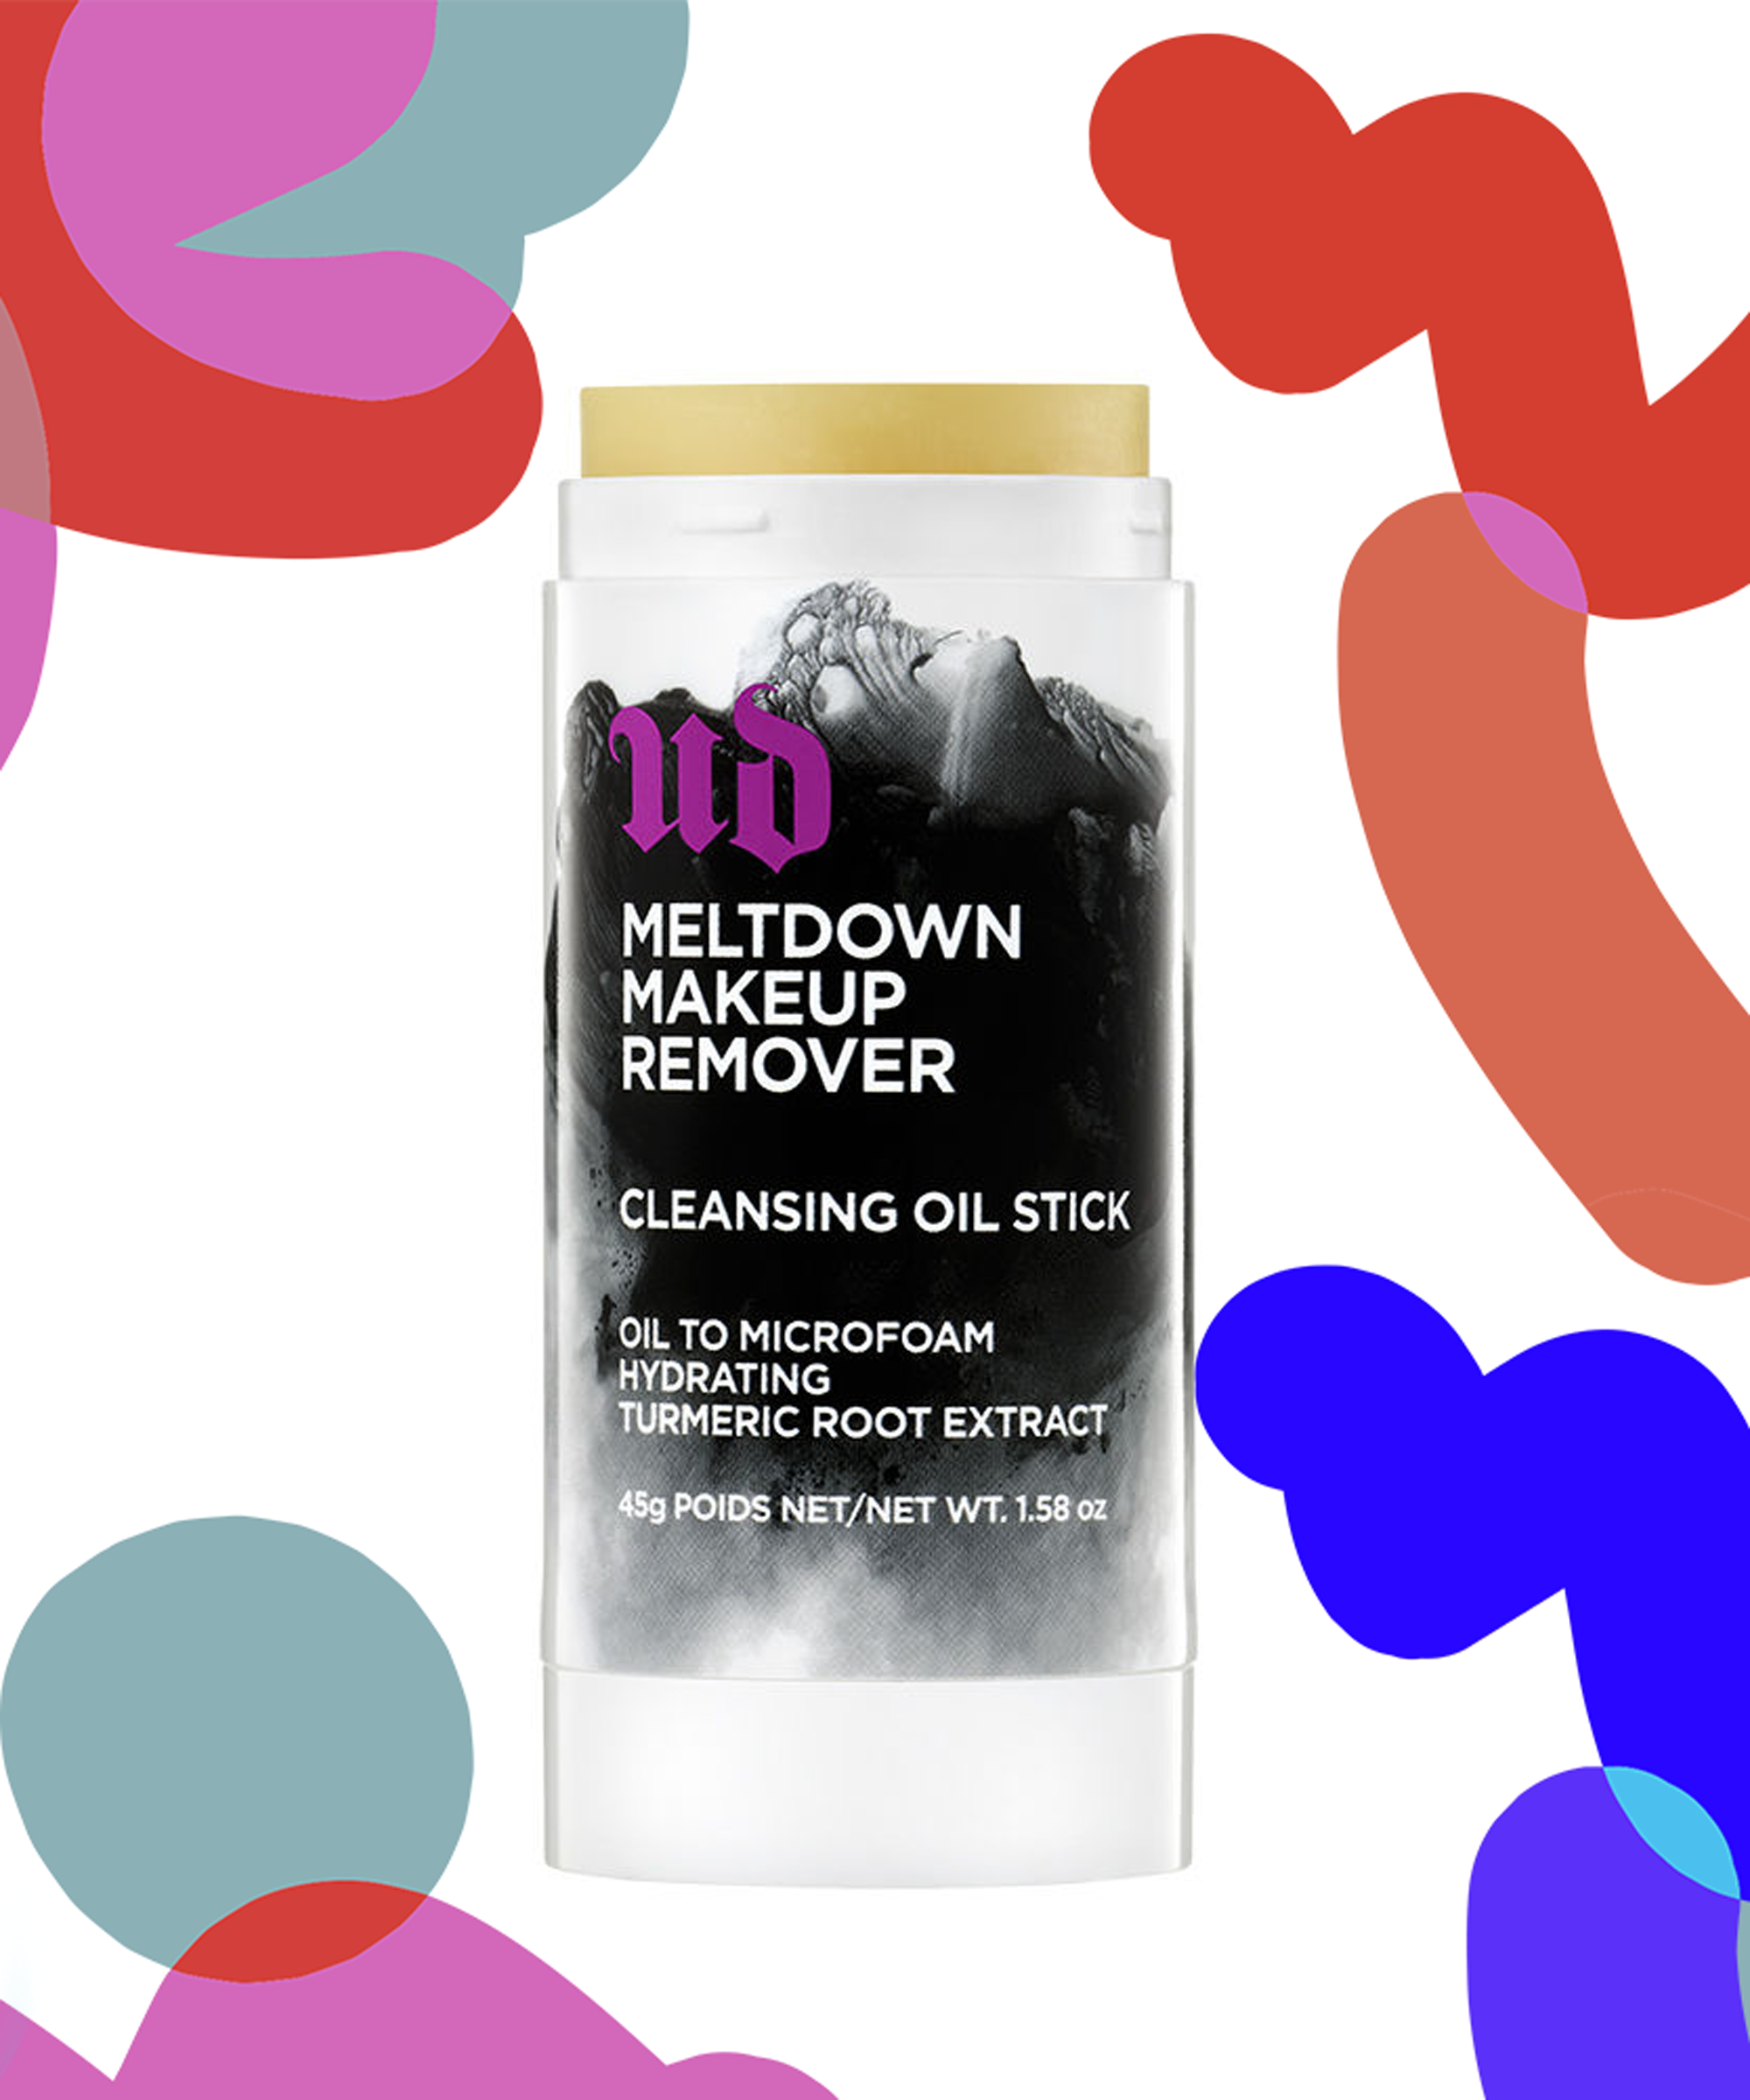 Urban decay eye makeup remover